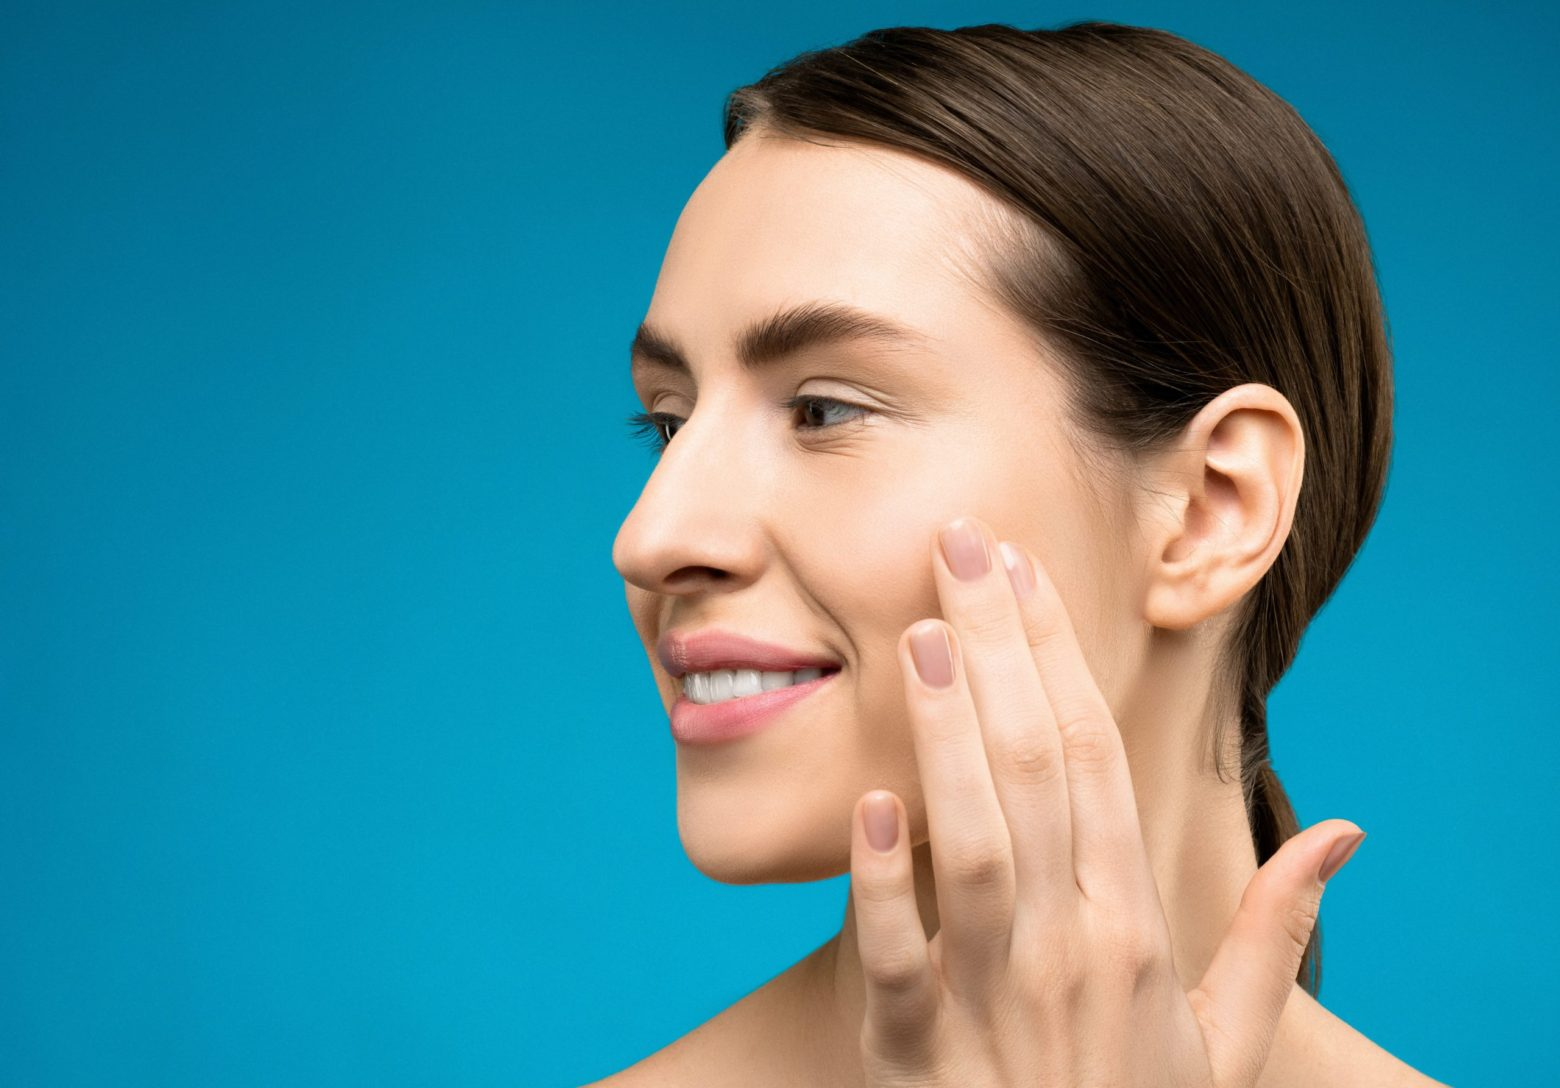 Why Your Skin Microbiome is Important—And 5 Ways to Protect It